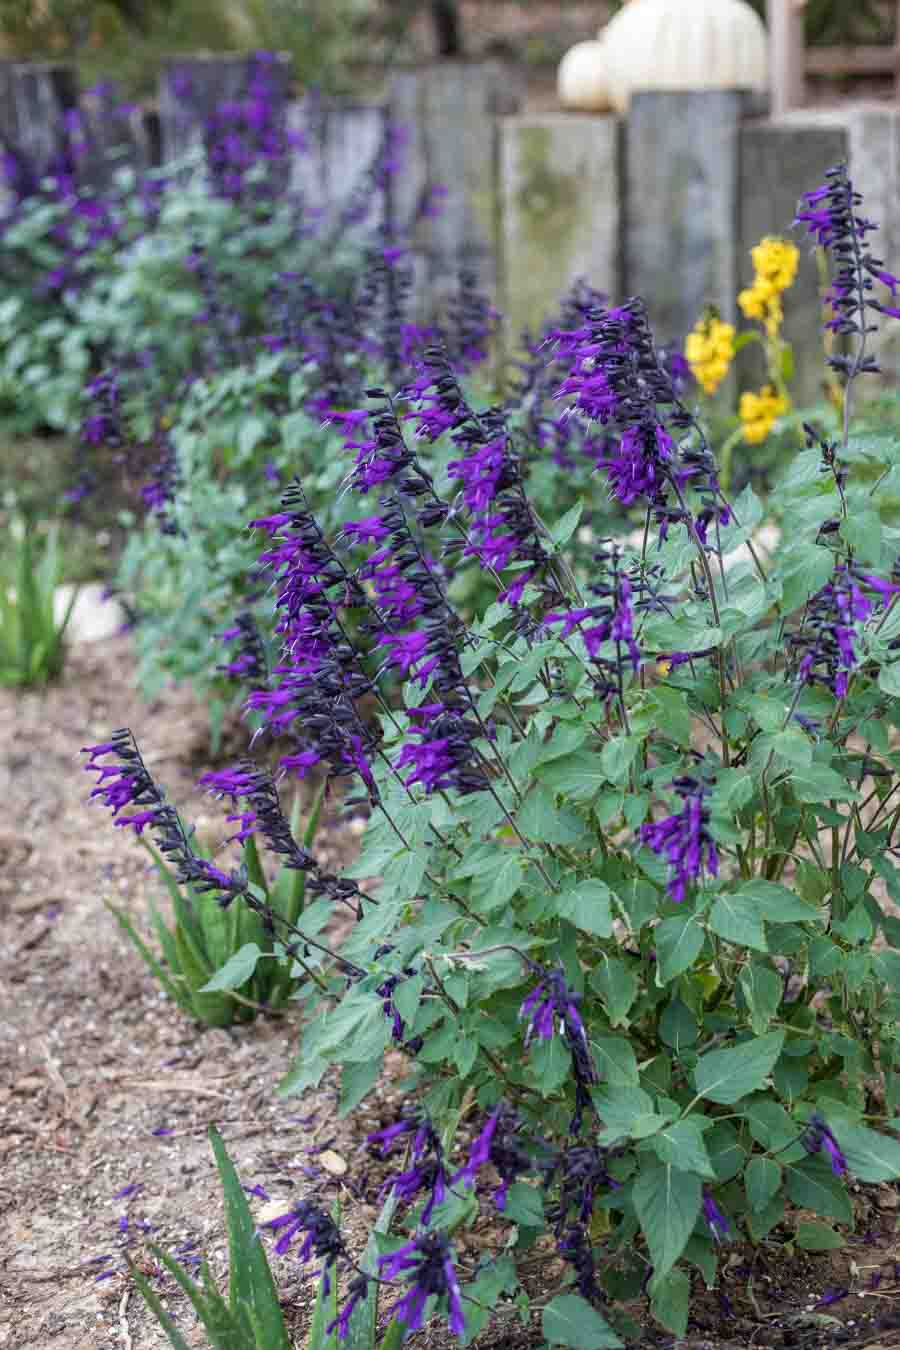 An image of Salvia or Sage plants with purple flowers and green foliage